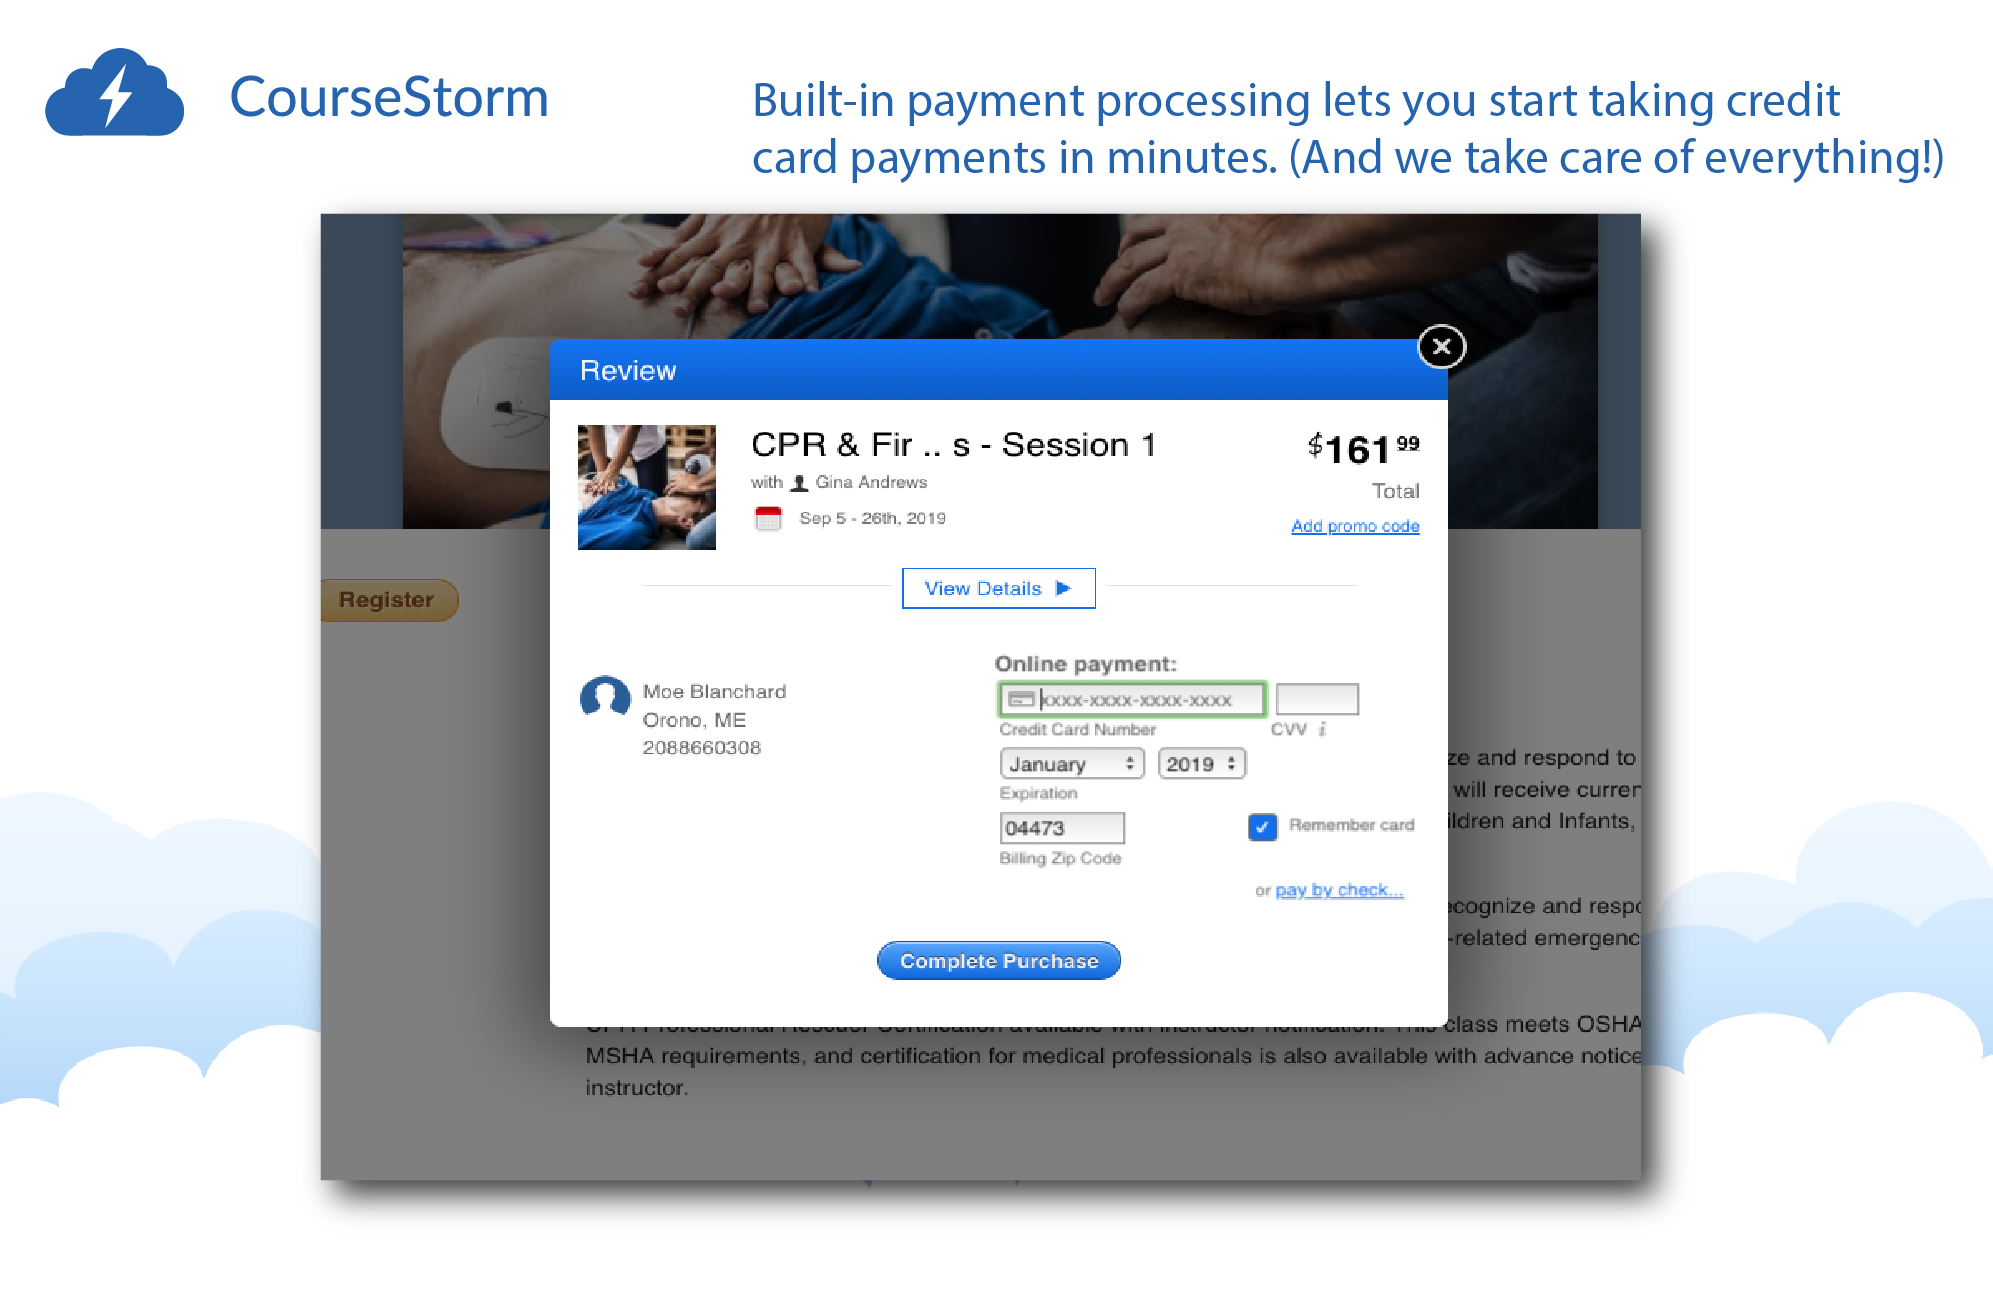 Built-in payment processing lets you start taking credit card payments in minutes. (And we take care of everything!)